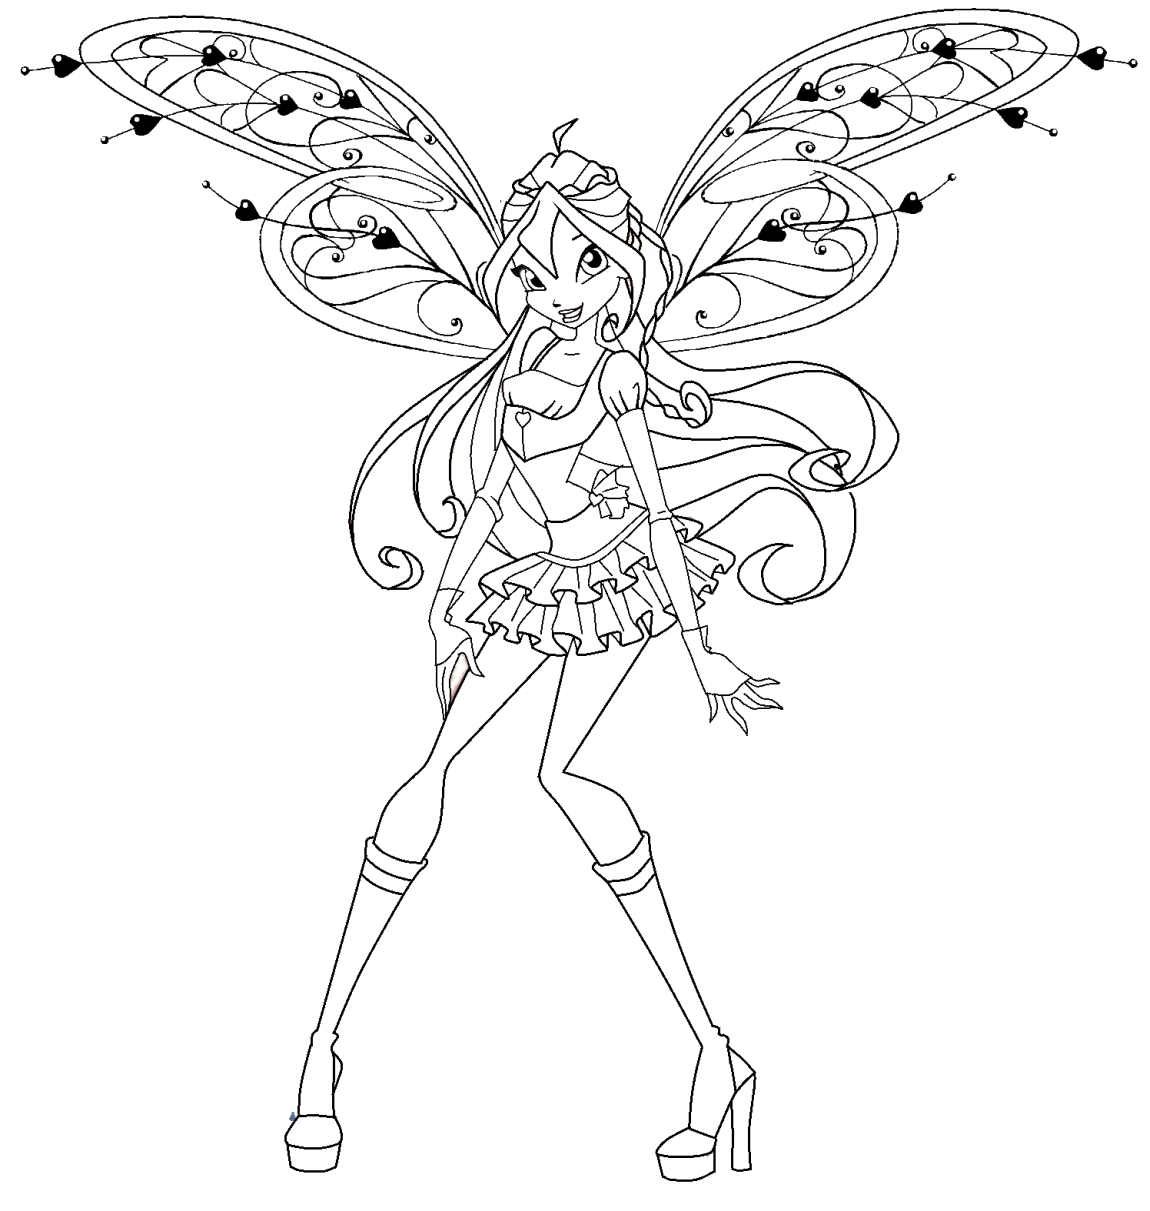 winx club bloom believix coloring pages winx club all colorear colorea a bloom believix coloring bloom club pages believix winx